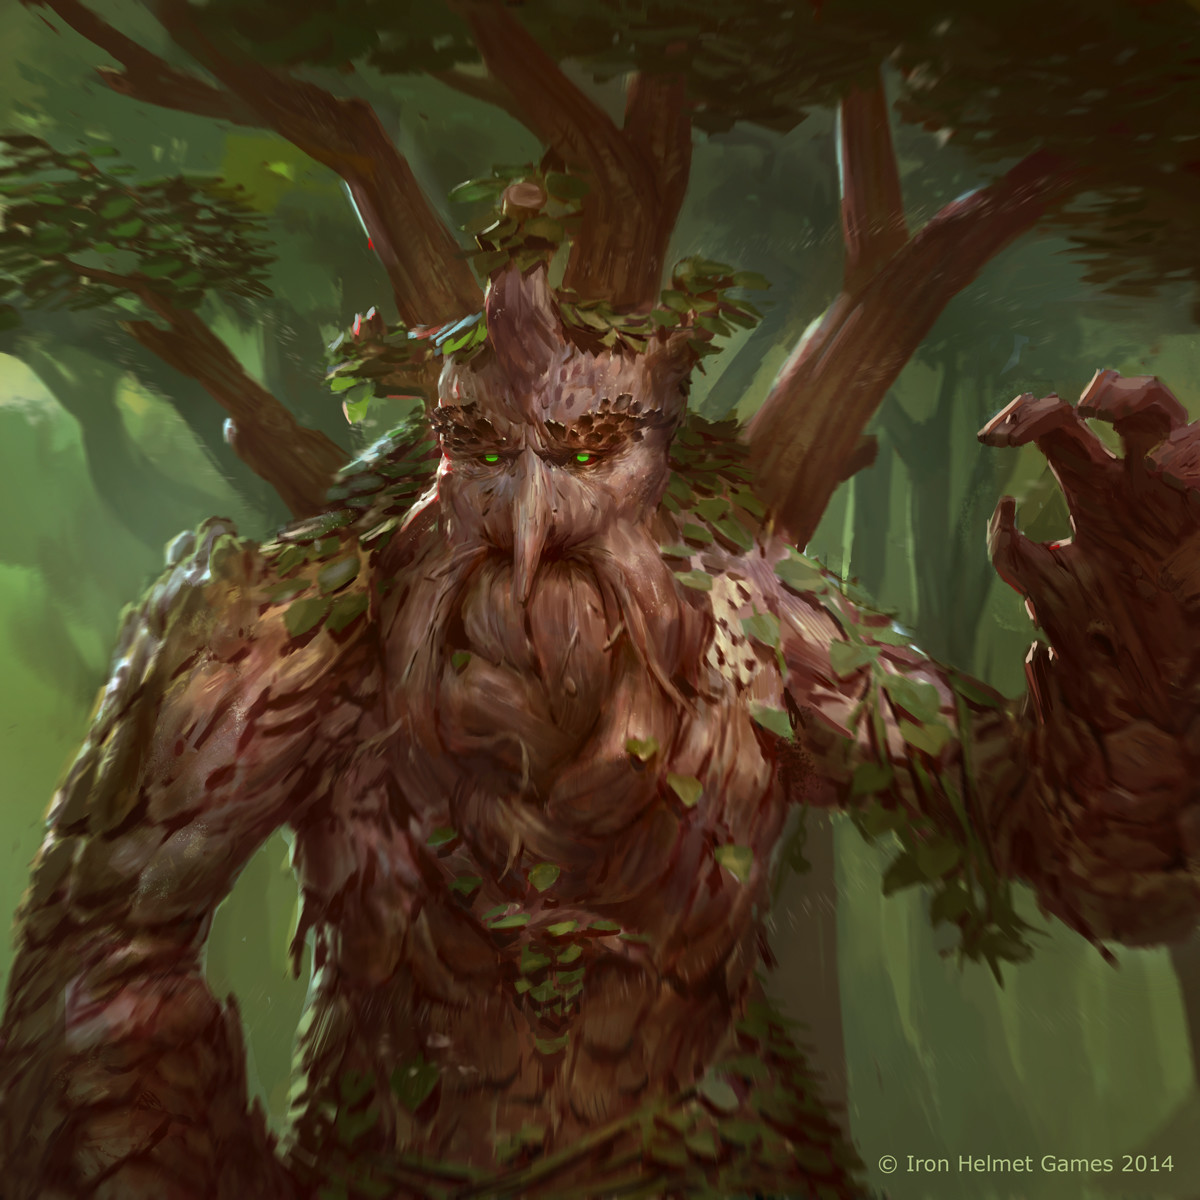 Protector of the Forest